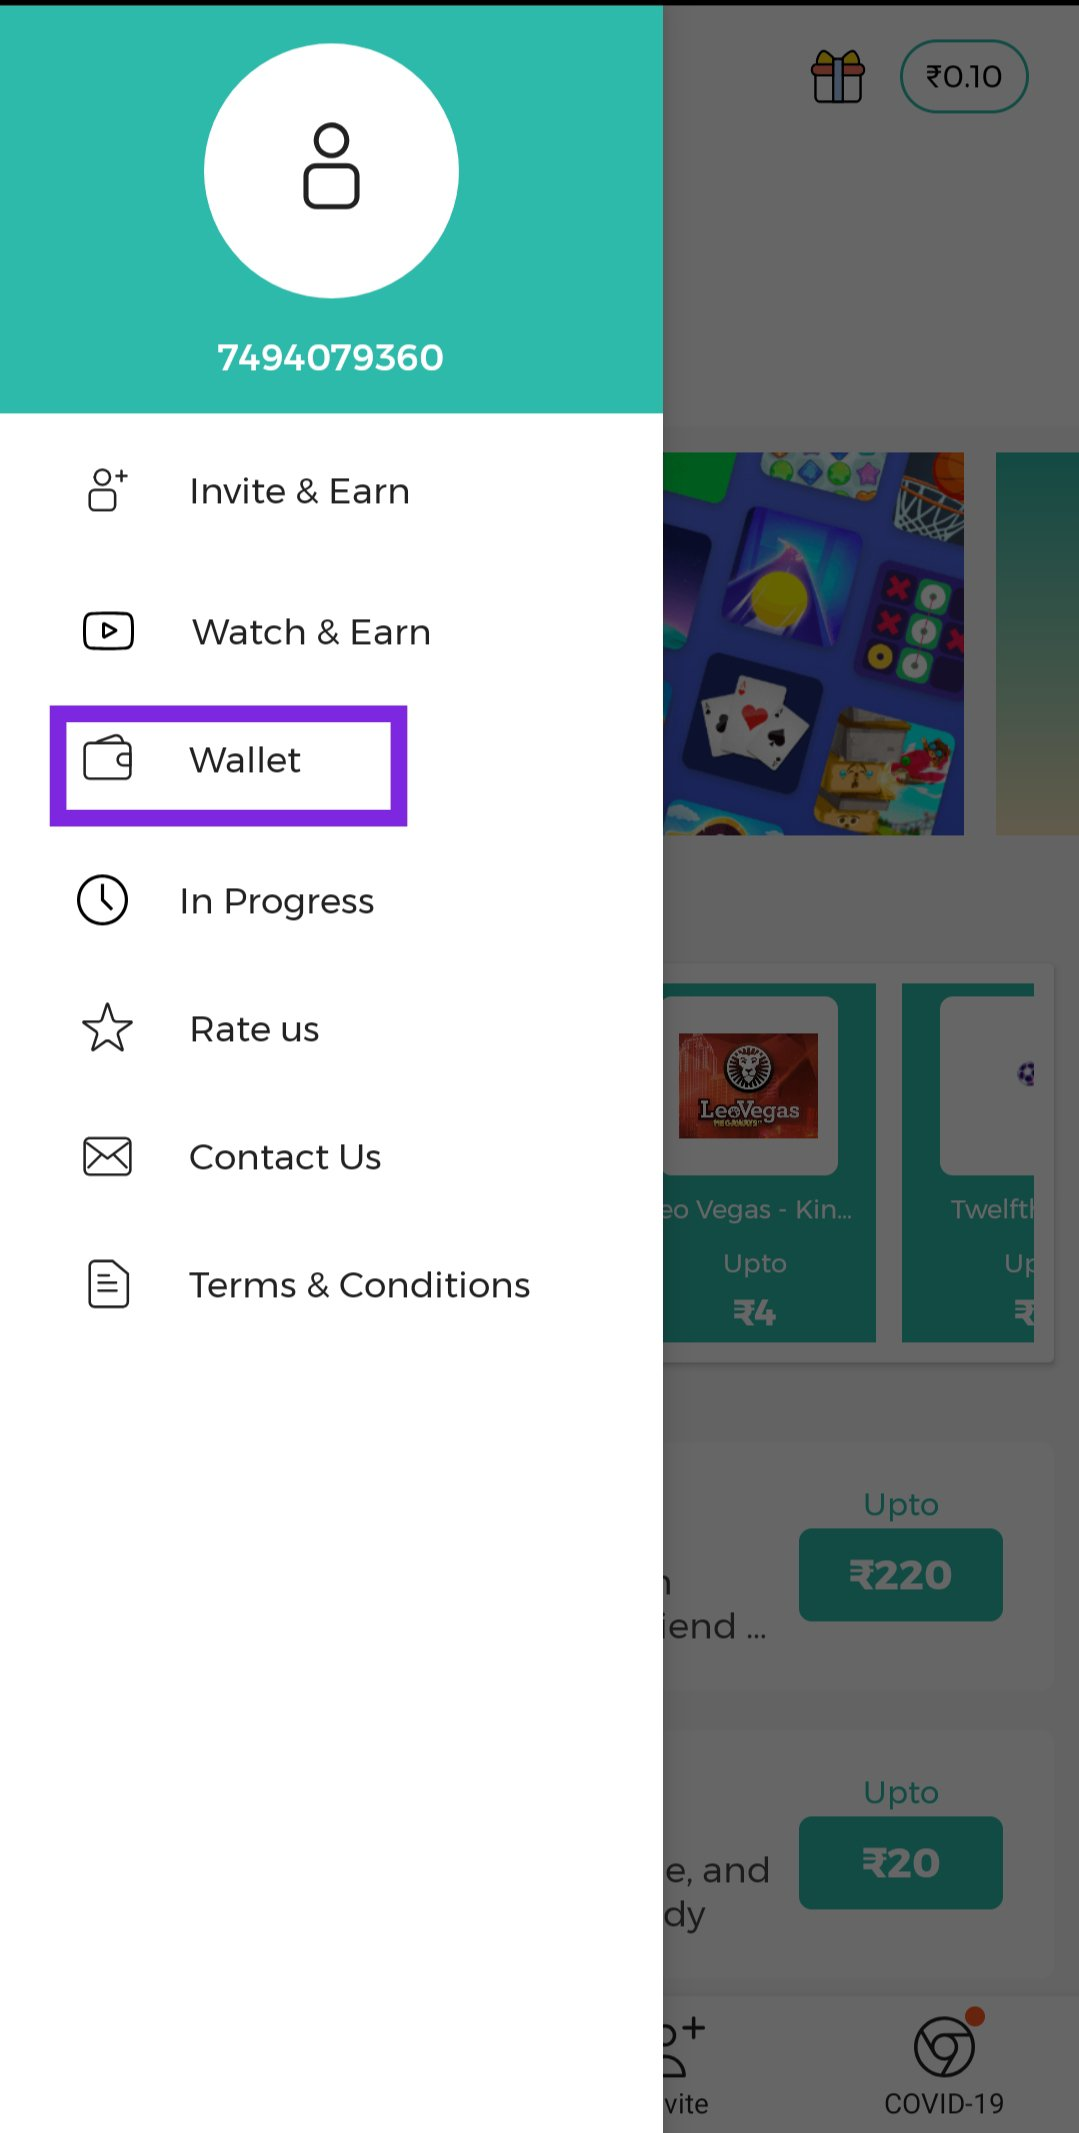 Cashbuddy App - Signup & Get Rs.20 | Refer & Earn